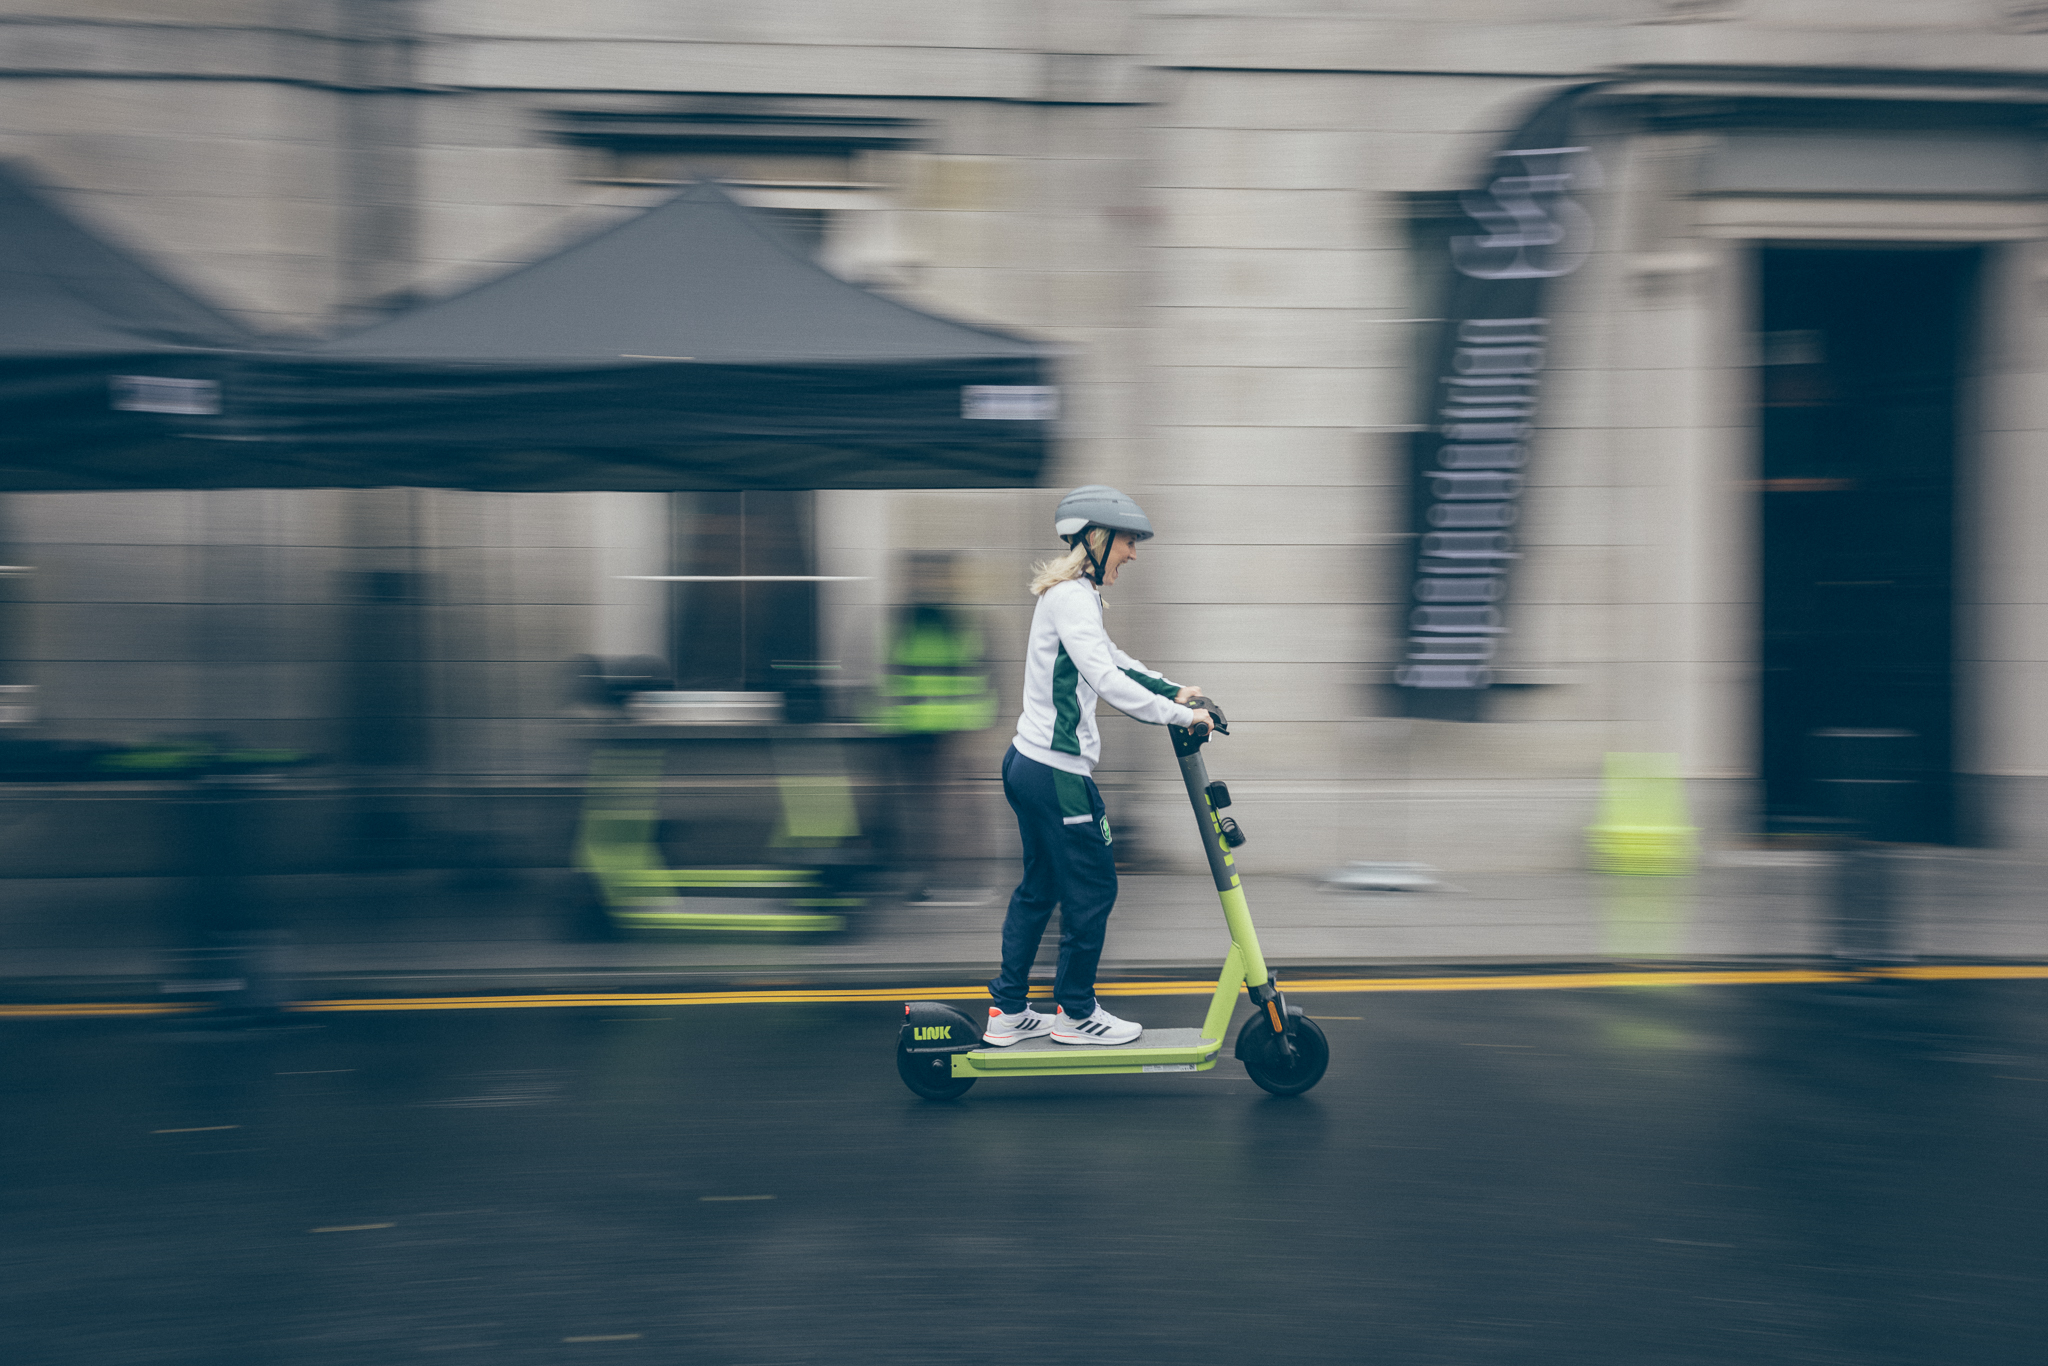 Government in Ireland approves legislation allowing e-scooters on public roads